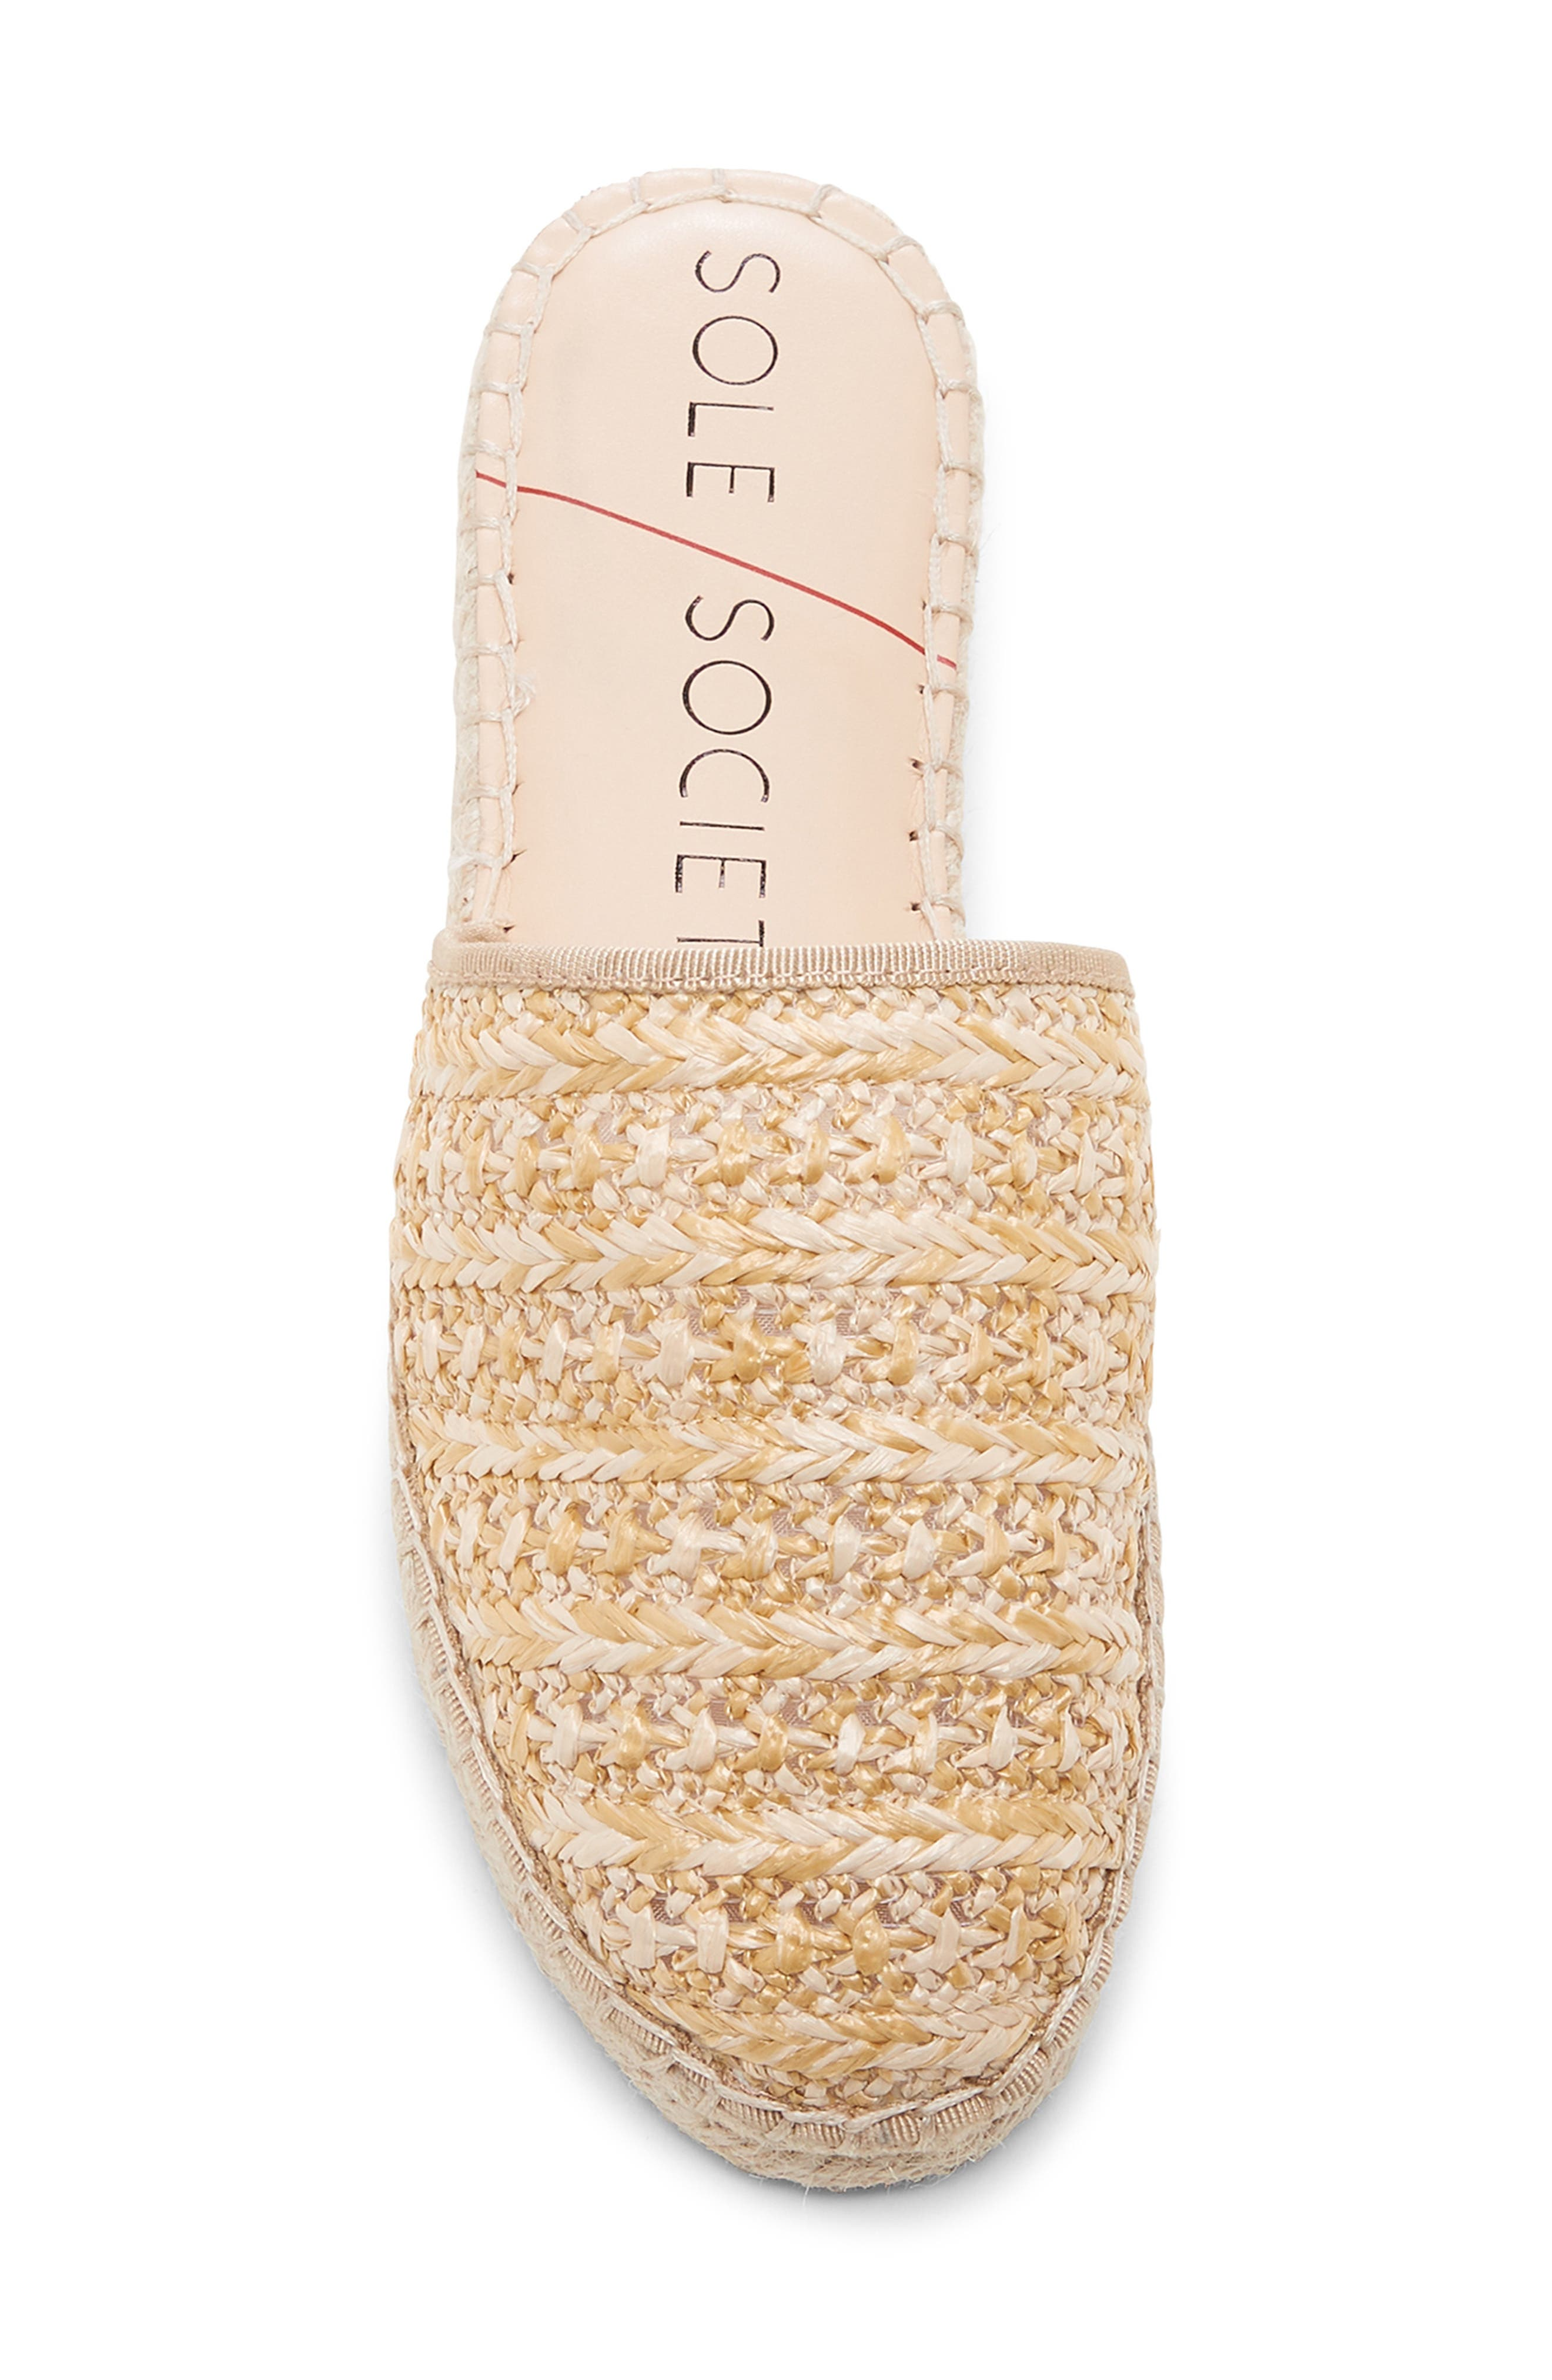 SOLE SOCIETY, Sadelle Espadrille Mule, Alternate thumbnail 5, color, NATURAL FABRIC